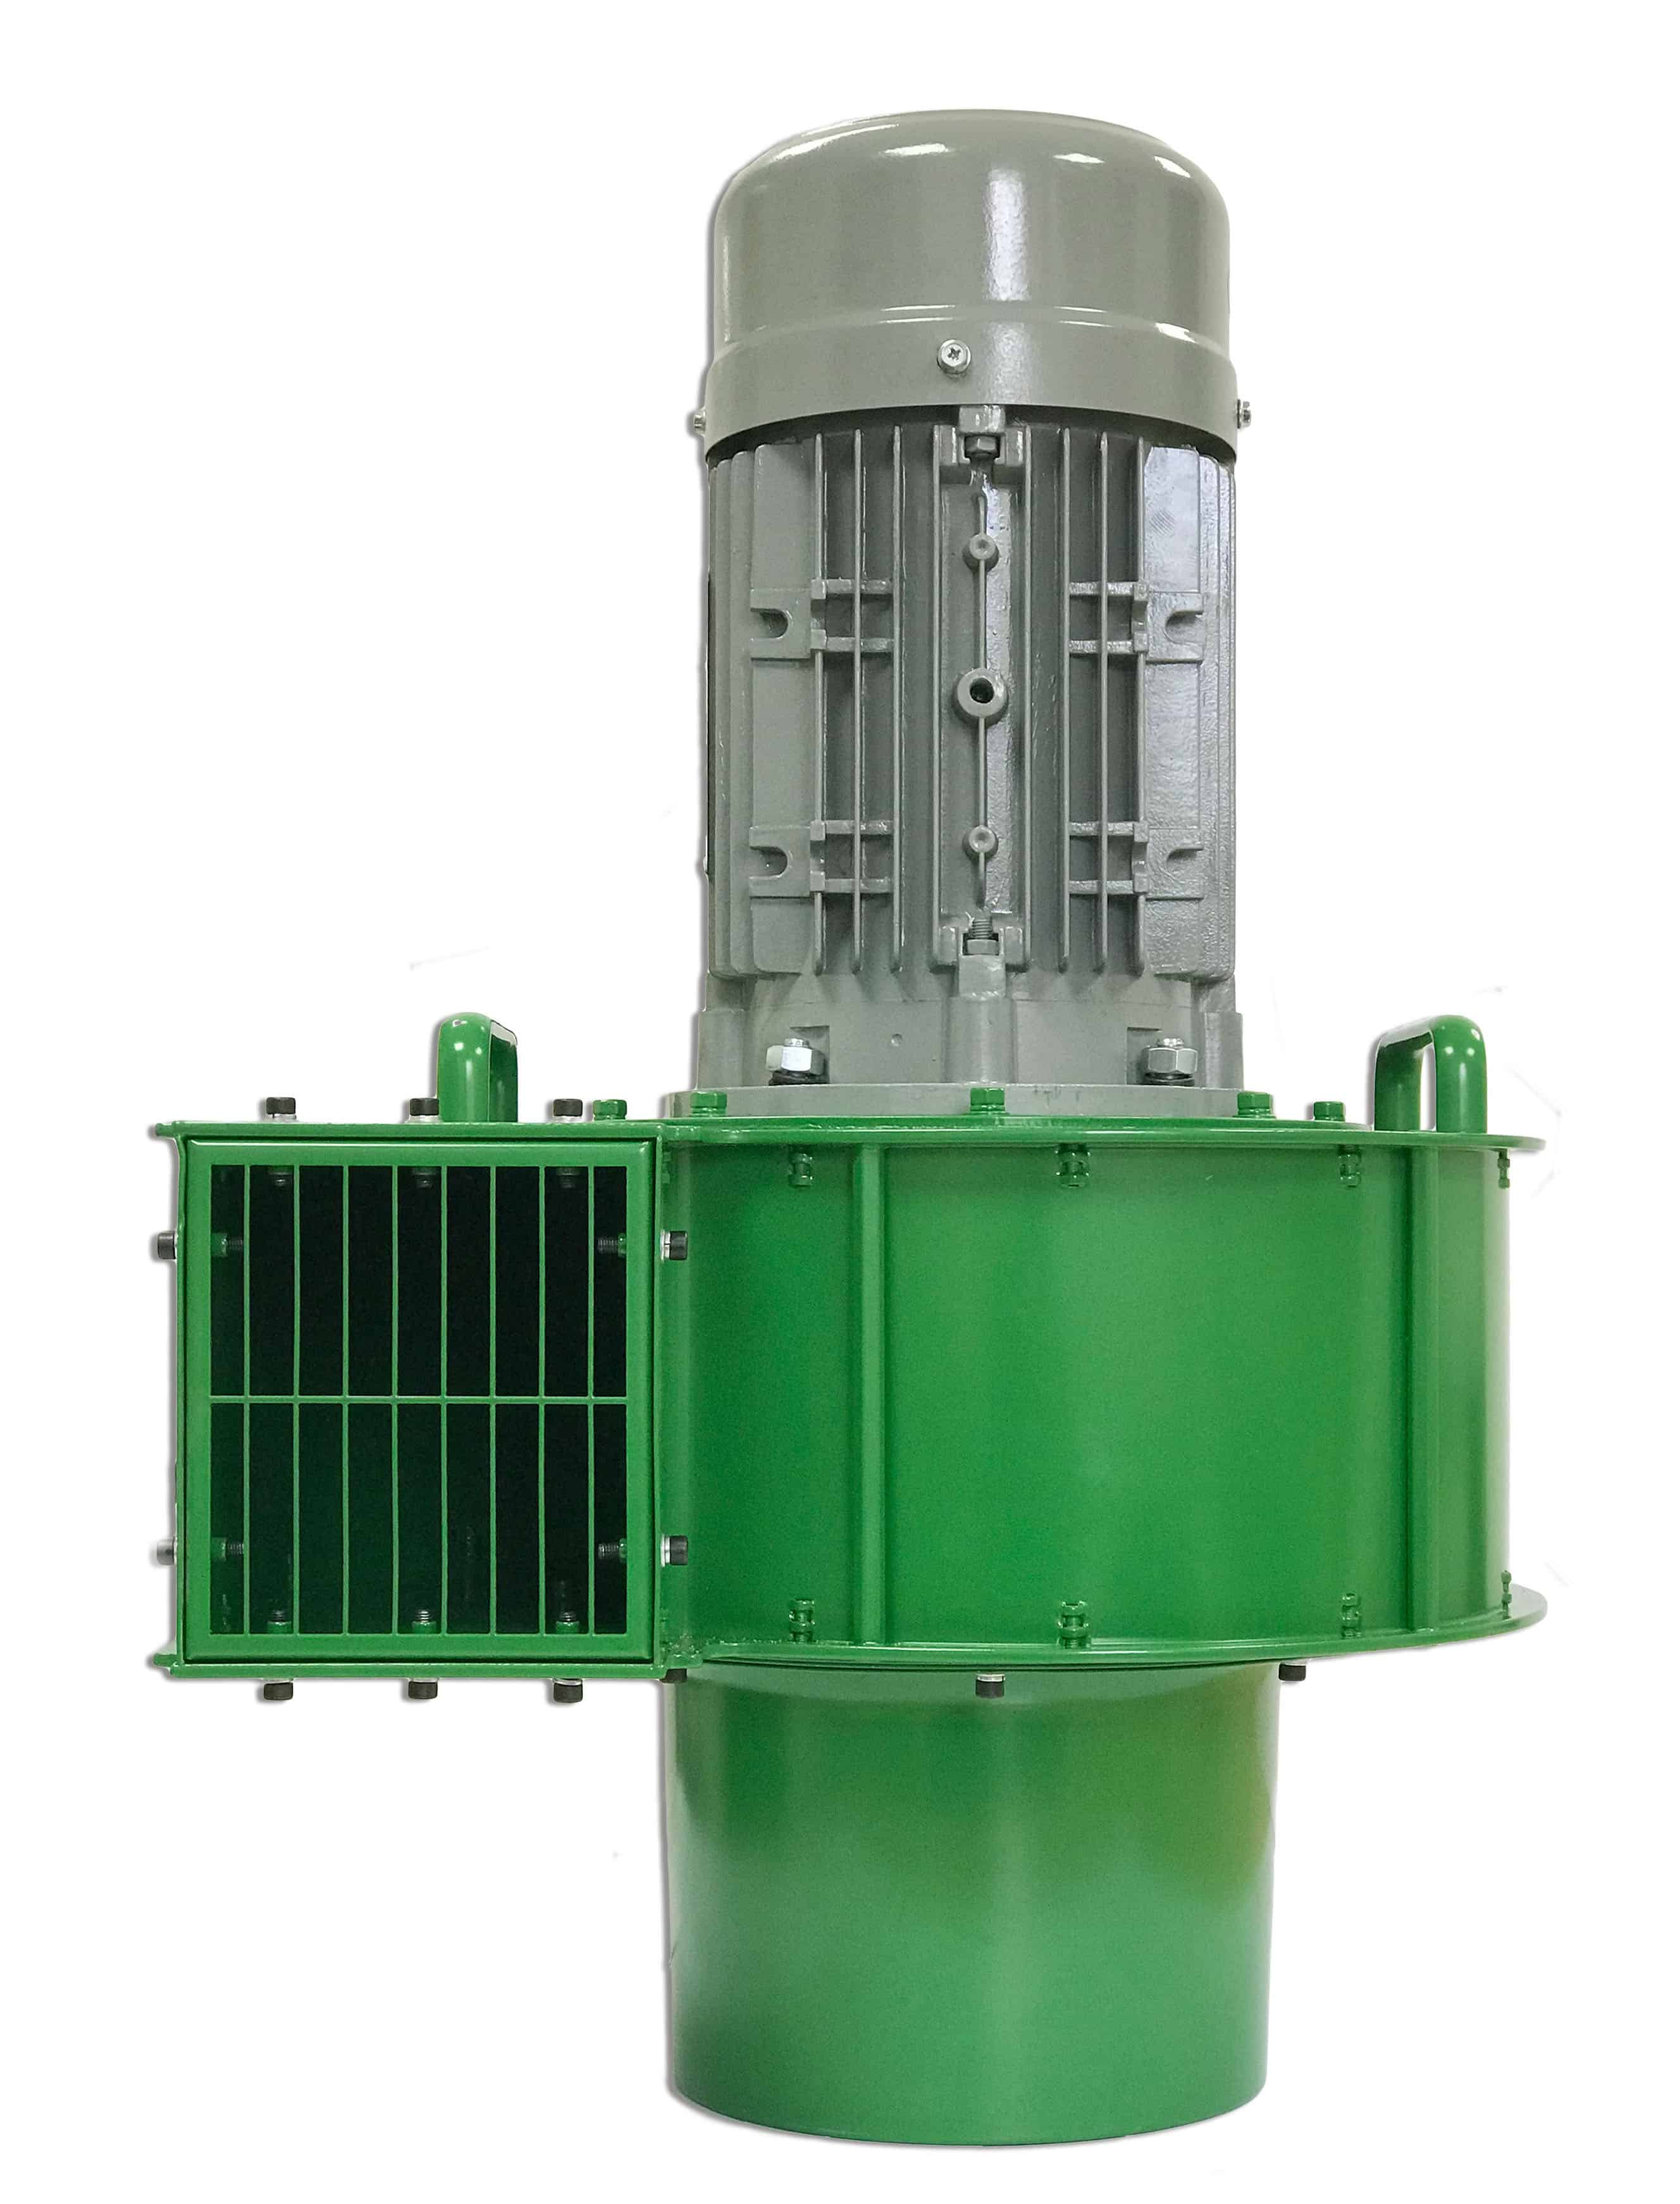 Martin Lishman f2 agricultural grain cooling fans offer one of the highest airflows in its class.